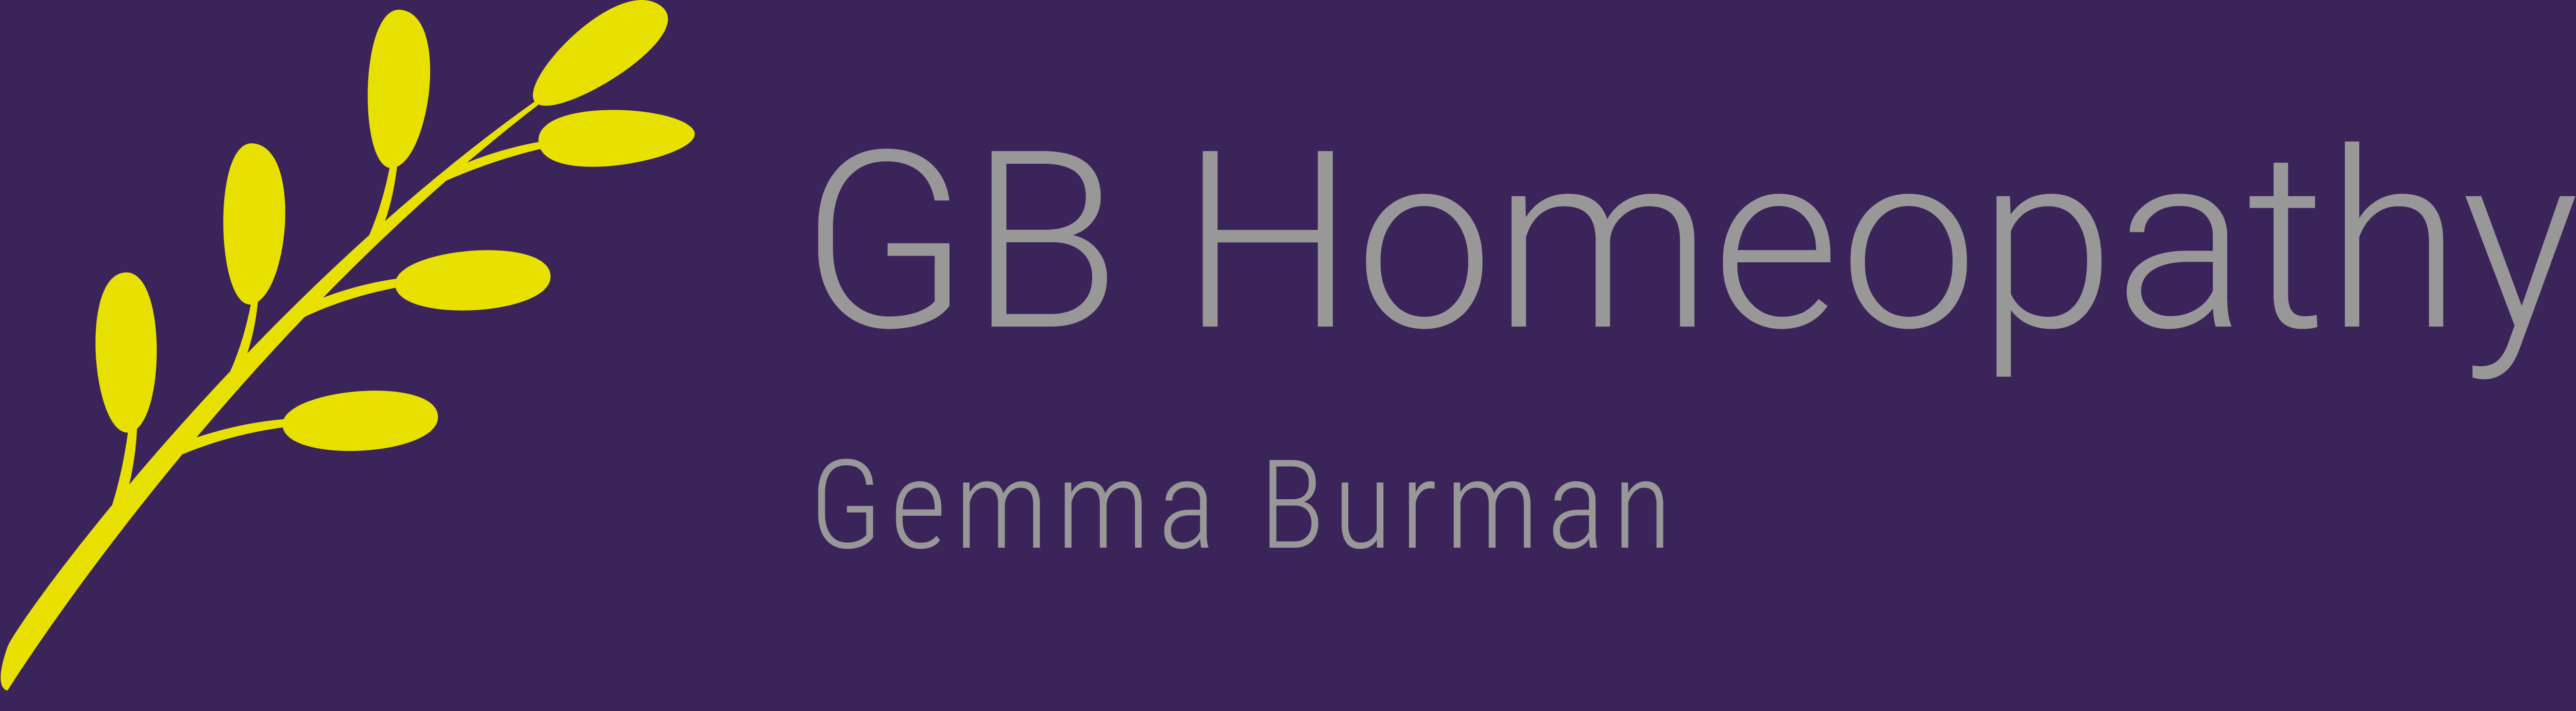 GB Homeopathy Logo